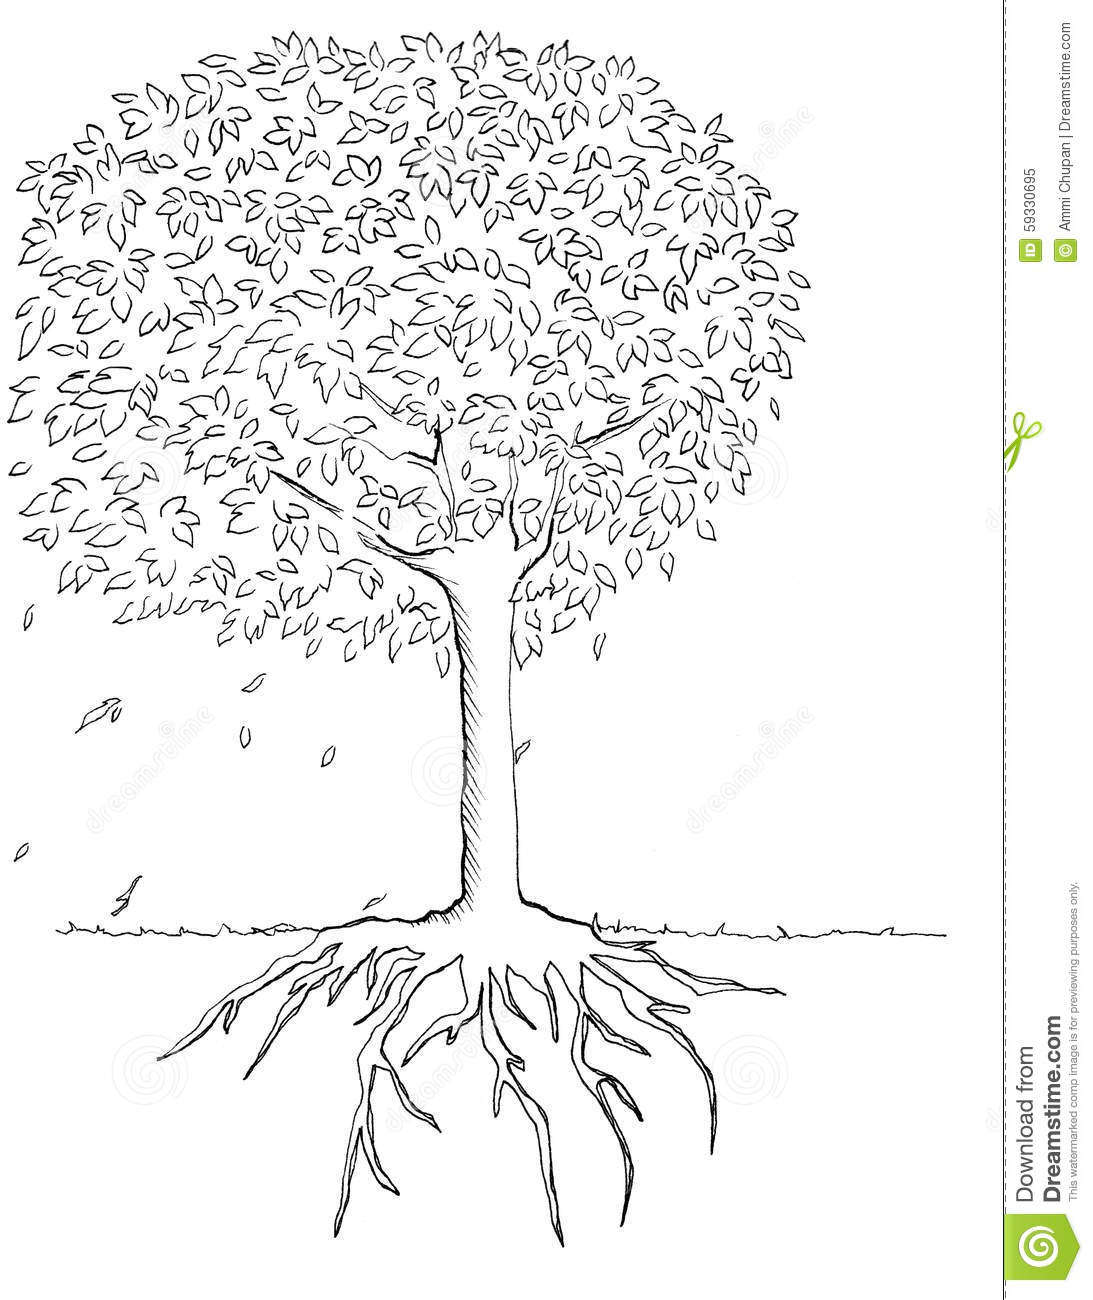 Tree And Root Illustration Hand Drawn Stock Illustration